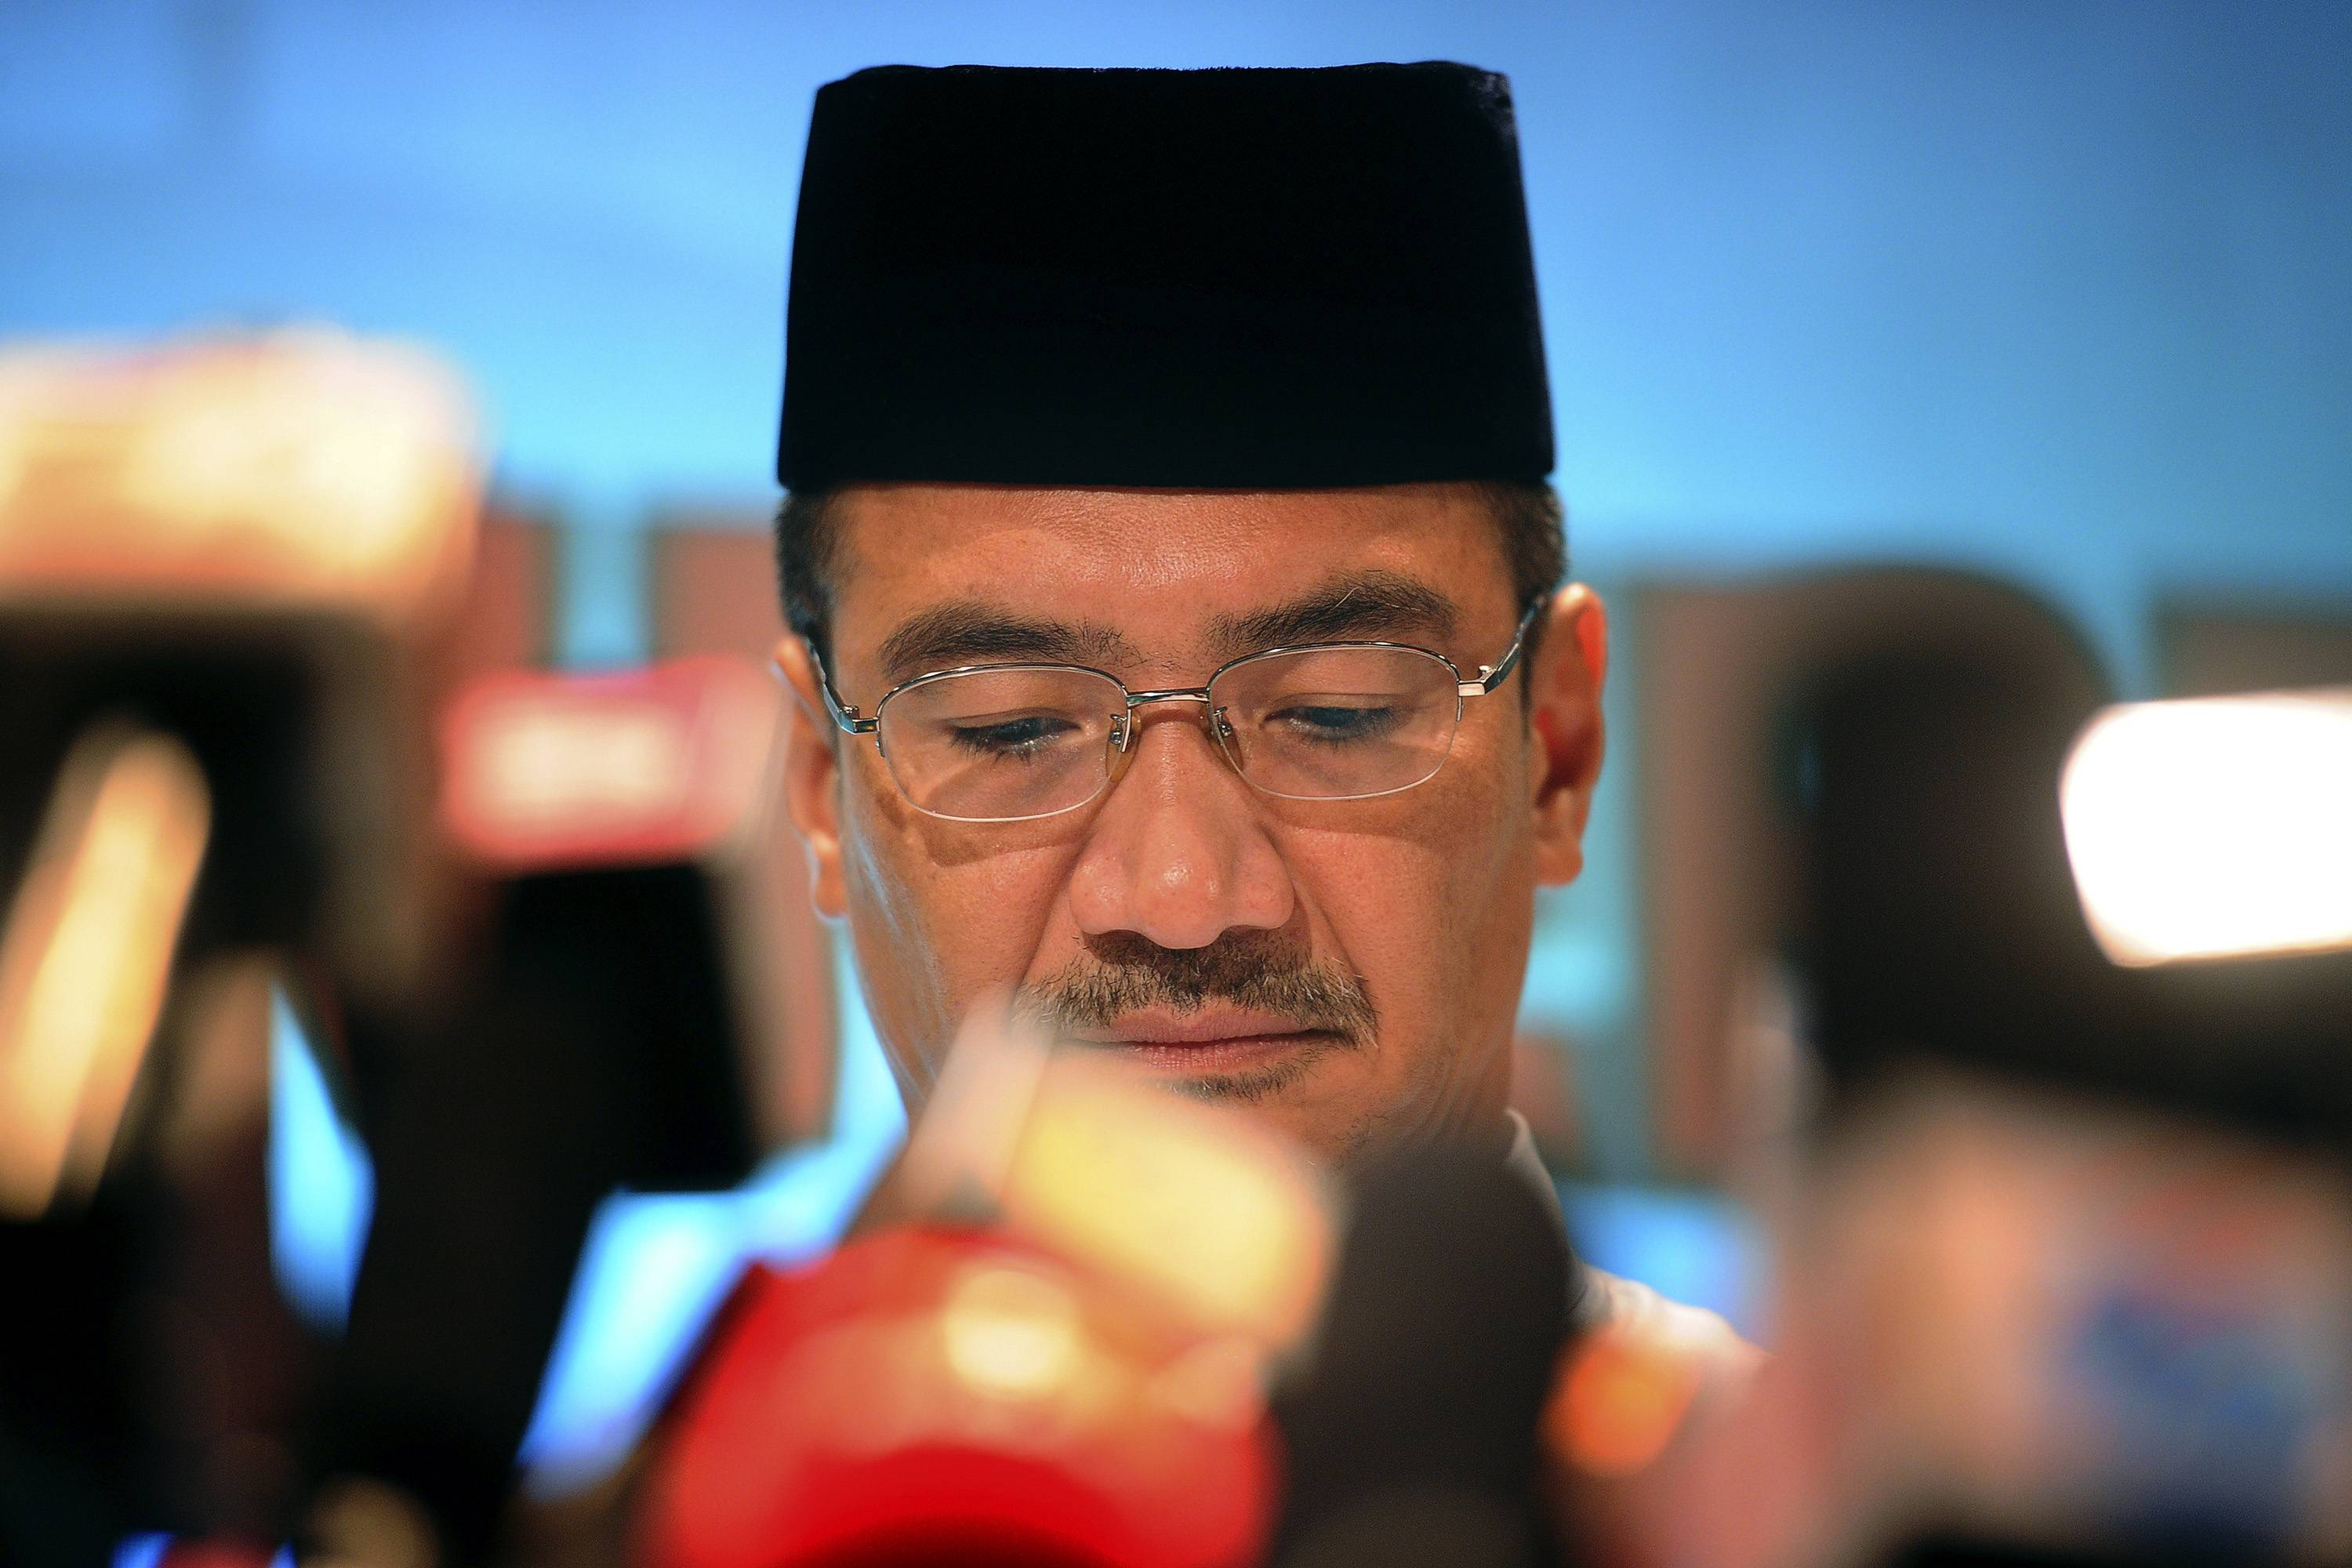 Malaysia's acting Transport Minister Hishammuddin Hussein pauses in between questions during a news conference for the missing Malaysia Airline plane Friday near Kuala Lumpur, Malaysia. Nobody knows if the pilots are heroes who tried to save a crippled airliner or if one collaborated with hijackers or was on a suicide mission.